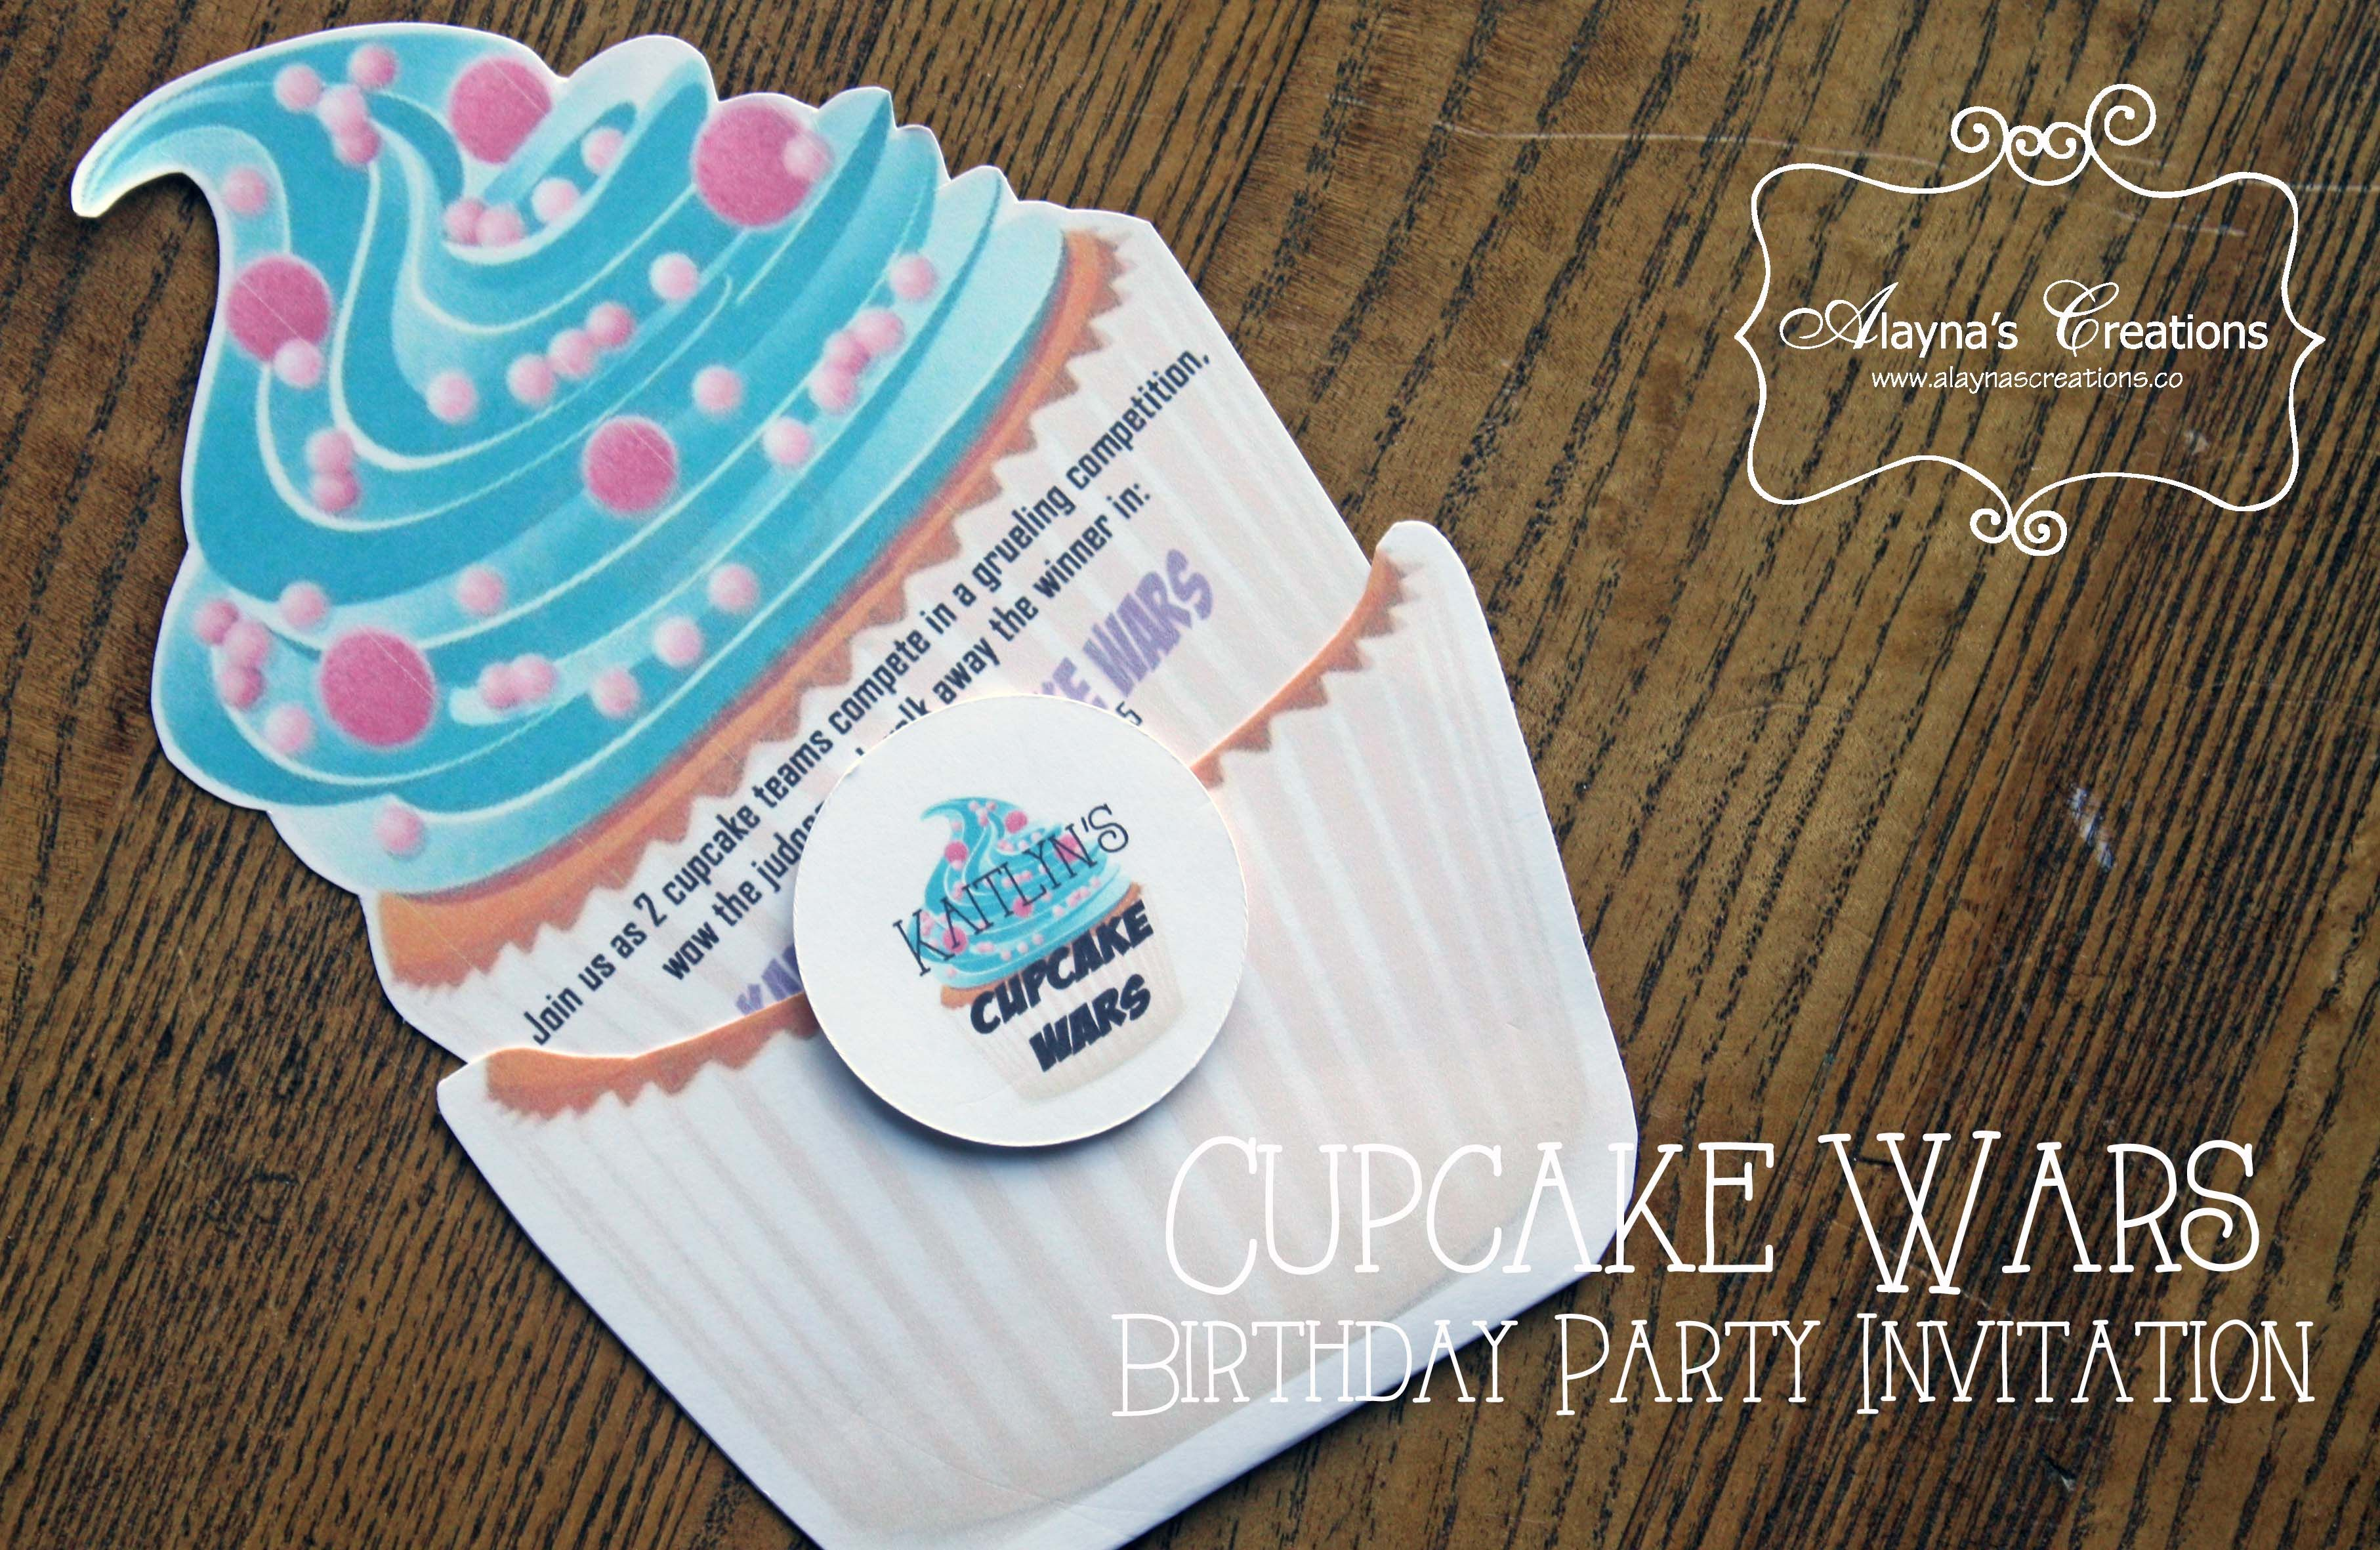 Cupcake Wars Birthday Party Invitation Cupcake Themed